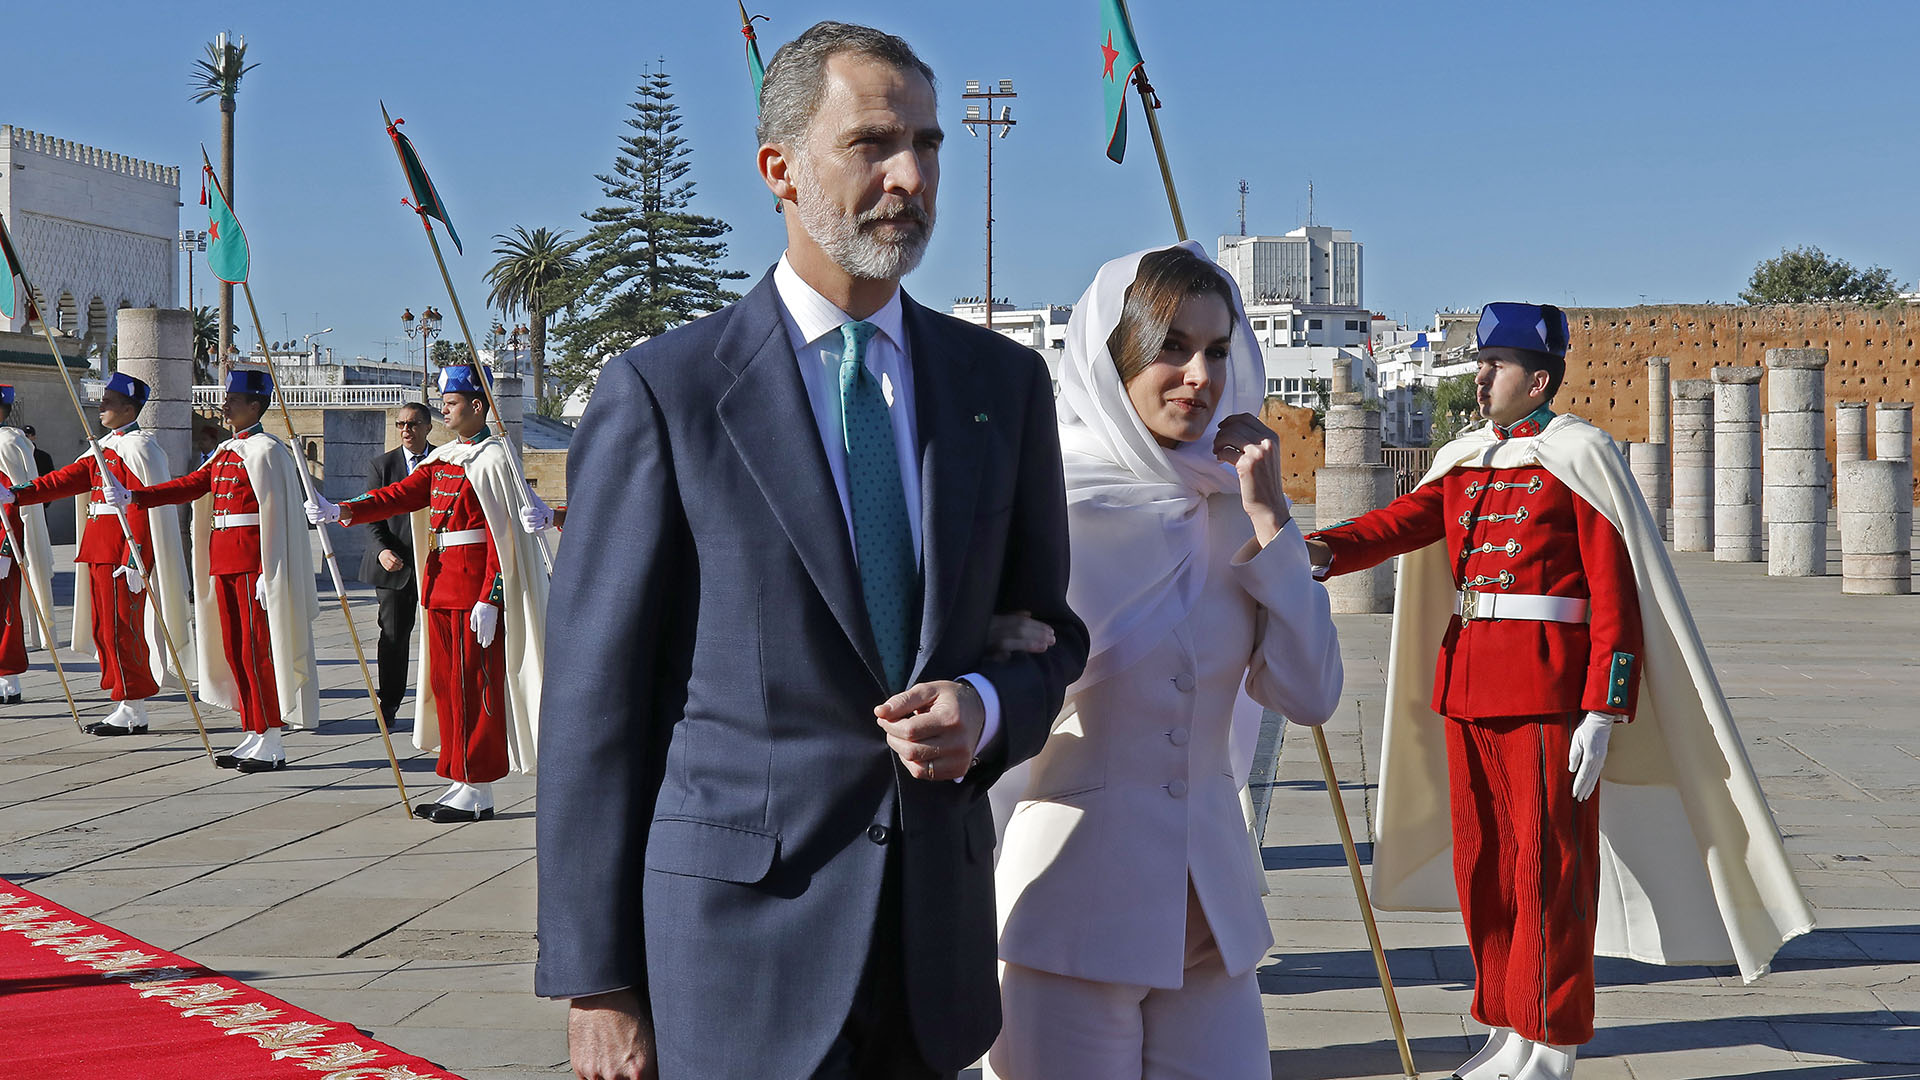 King Felipe of Spain (L) and Queen Letizia arrive at the mausoleum of Mohammed V in Morocco's capital Rabat, on February 14, 2019, during an official visit. (Photo by STRINGER / AFP) /